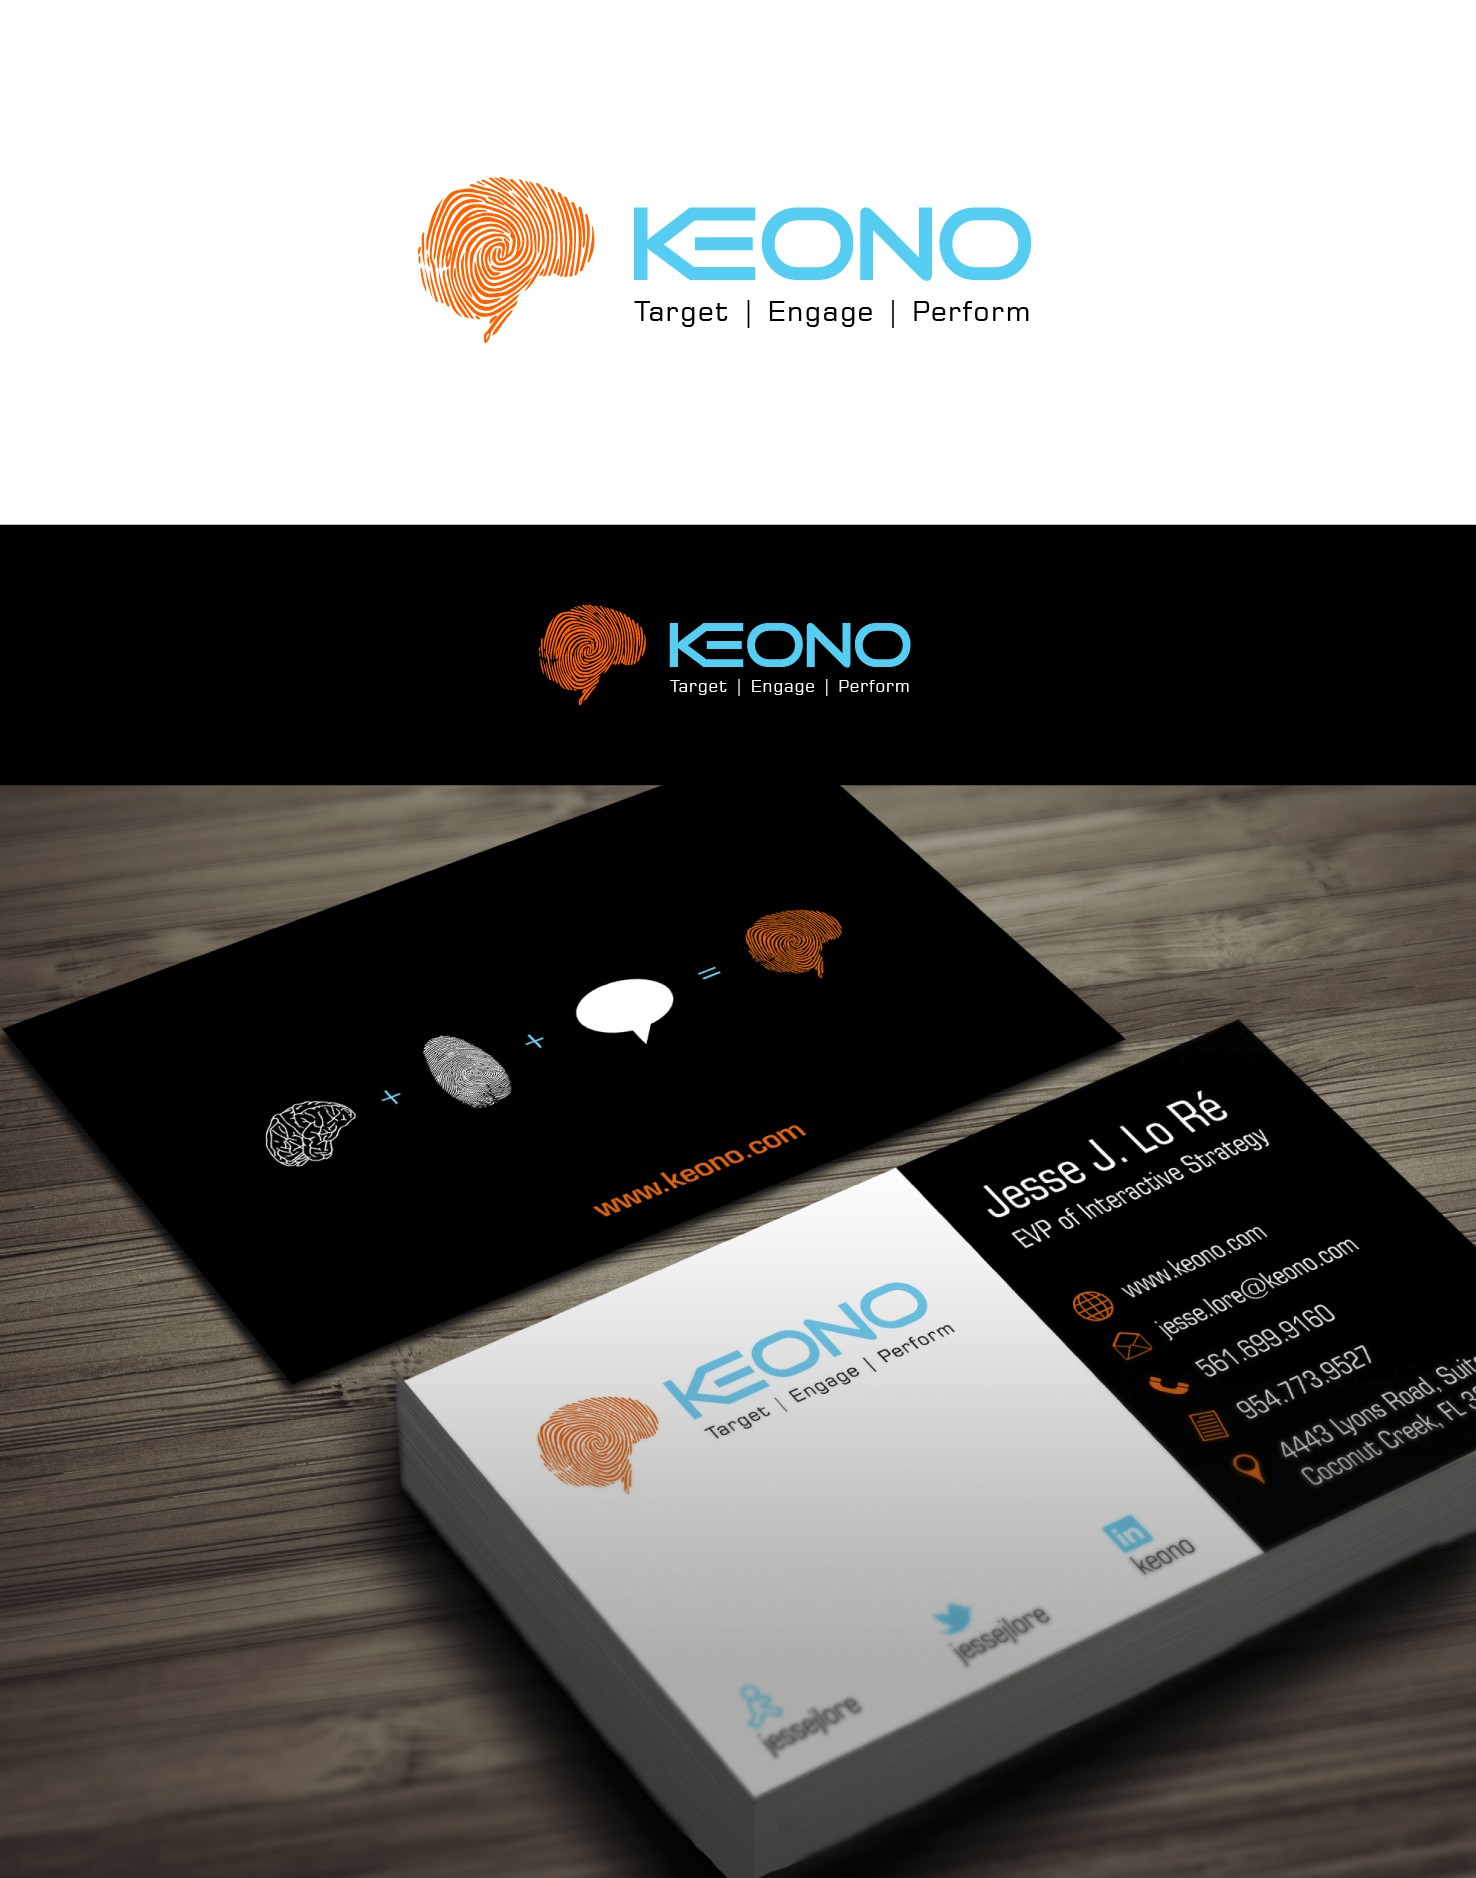 Create the next logo and business card for Keono